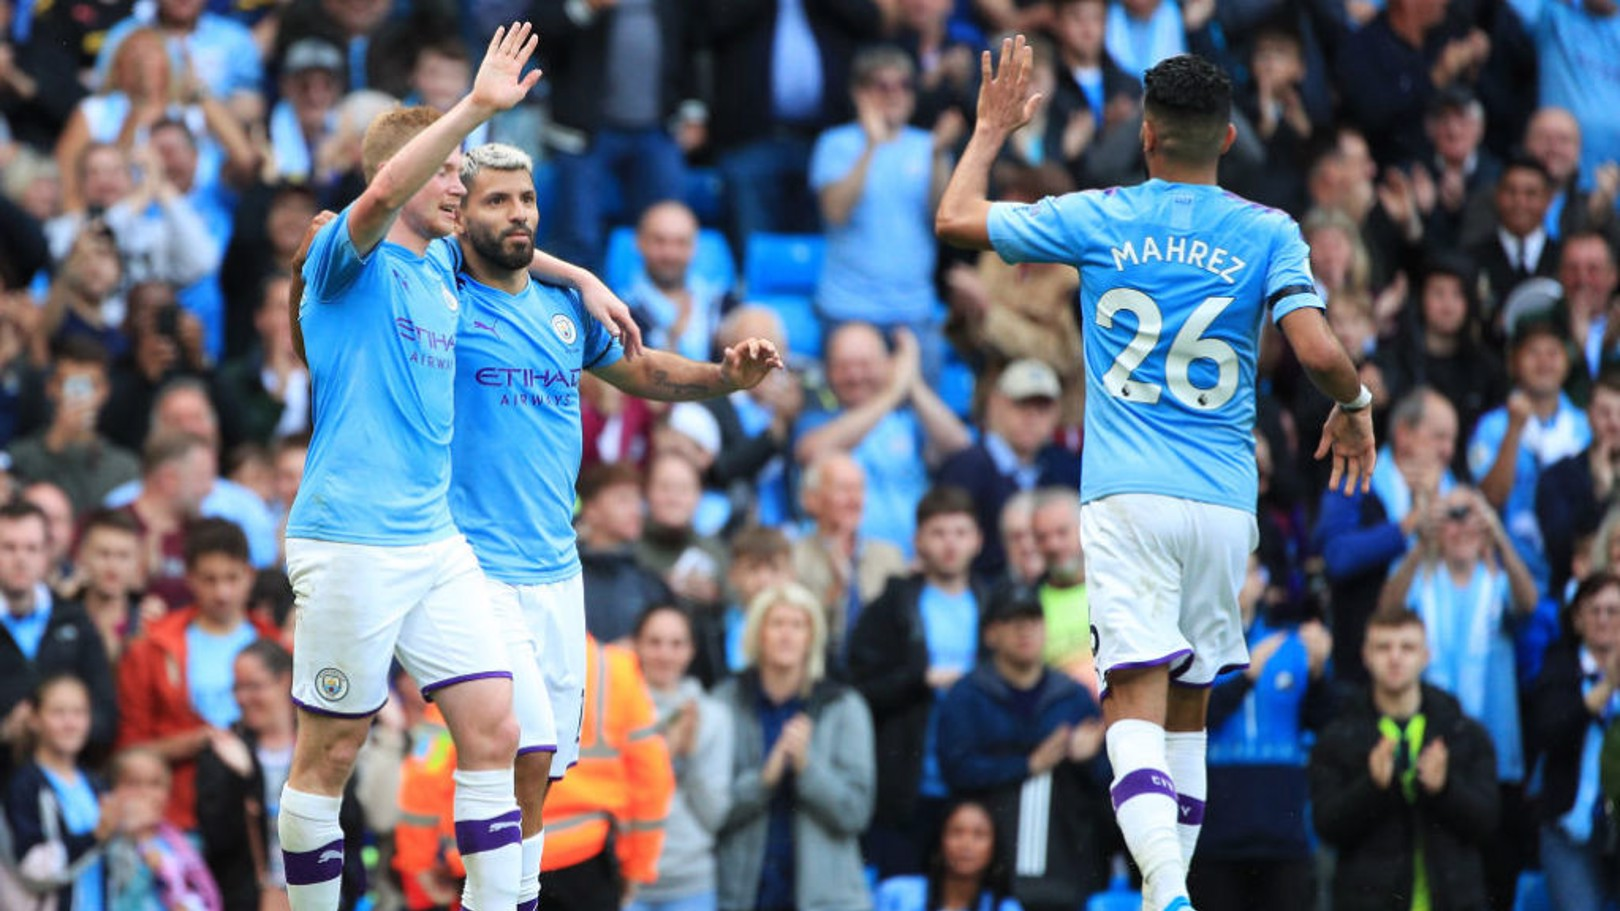 PFA AWARD: Two City players have made the six-man shortlist